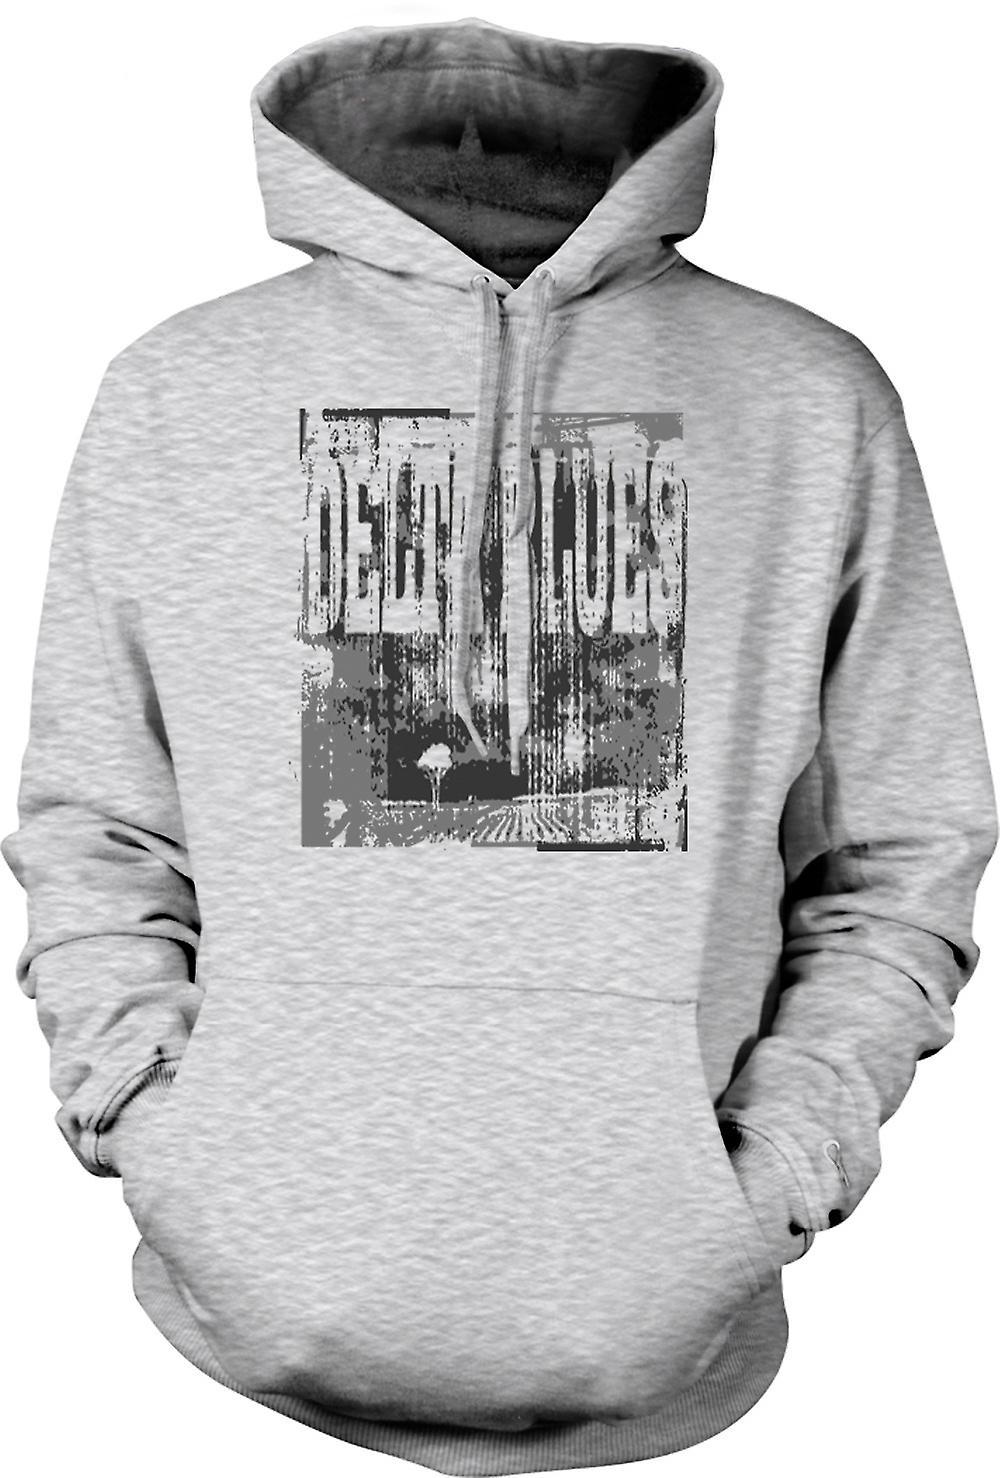 Mens Hoodie - Delta Blues Guitar - Rock Music